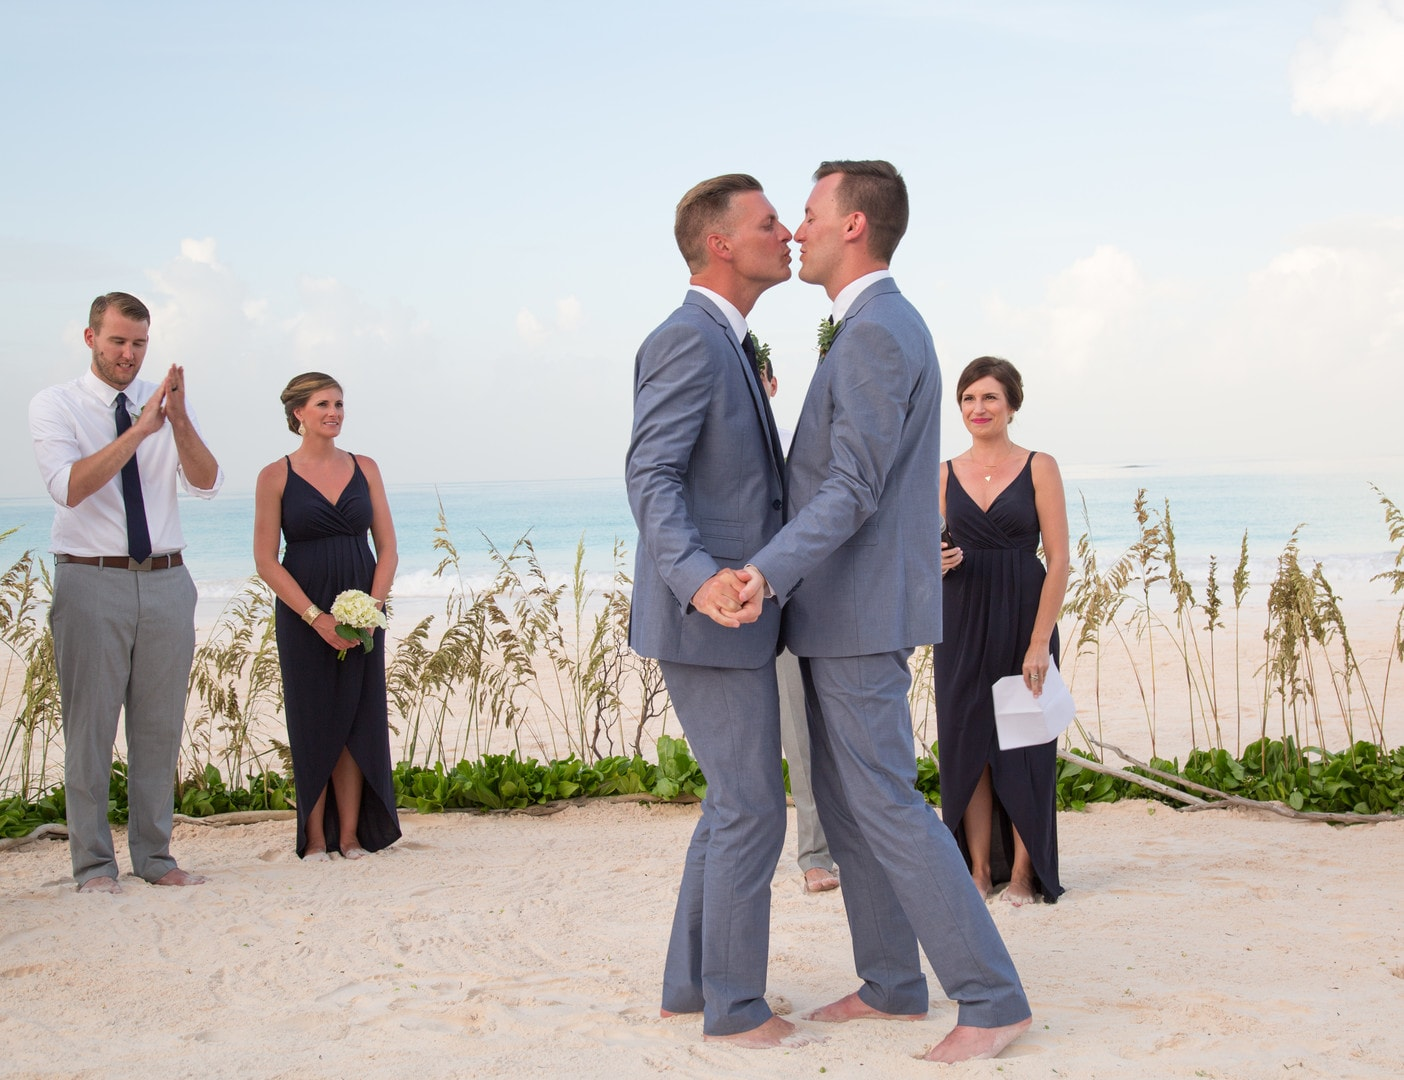 Brandon & Scott's Simple Elegant Beach Vow Renewal In Harbour Island, Bahamas, Photography by Paola Wells Photography for Destination Wedding Blog Adriana Weddings